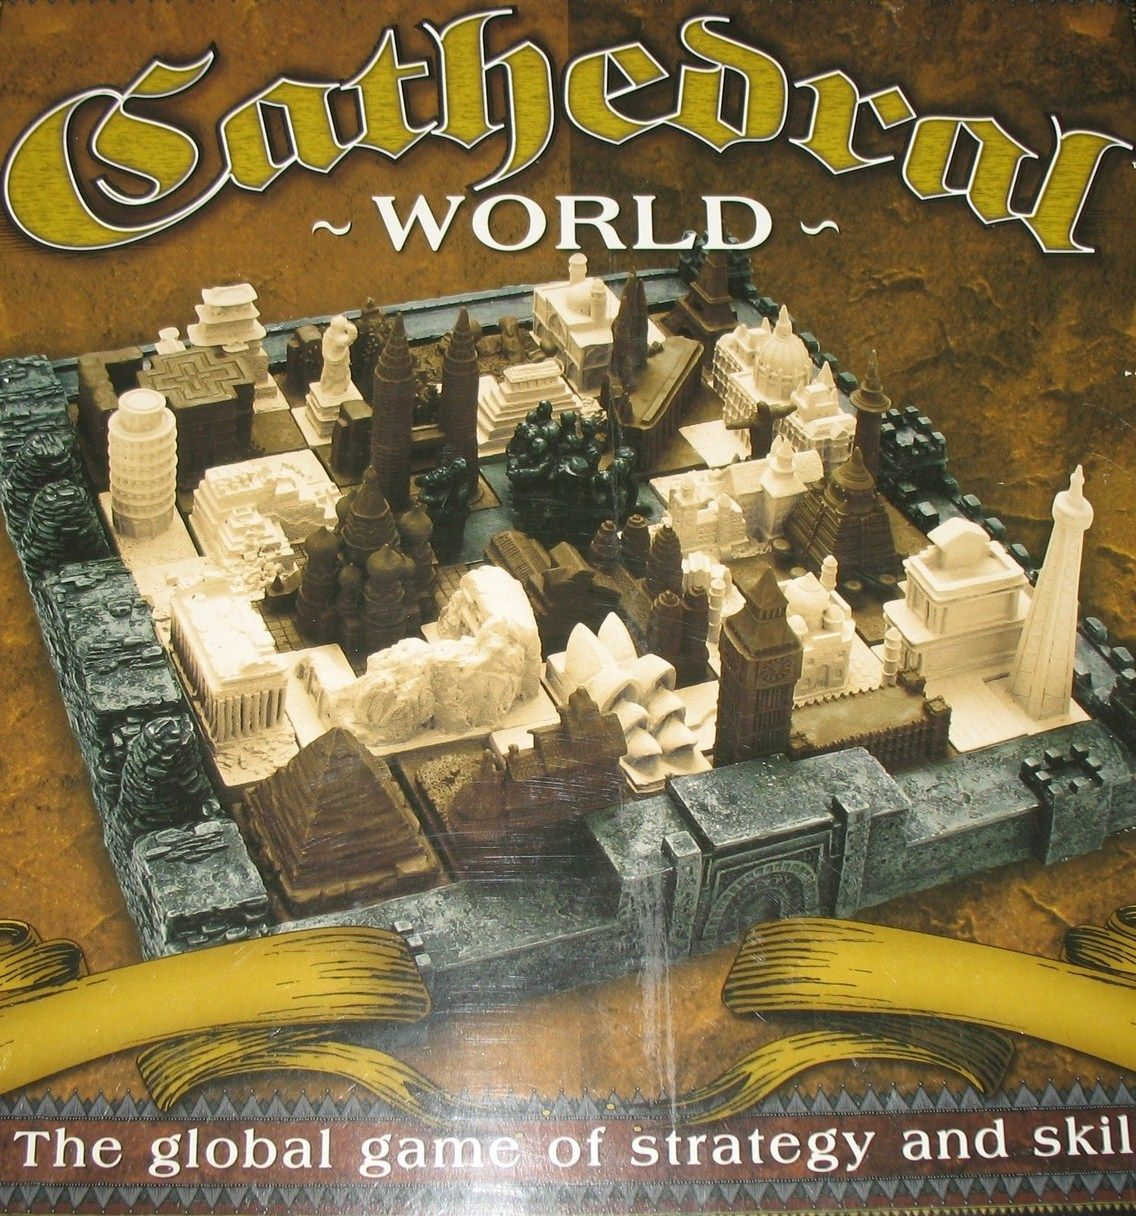 Cathedral World is a strategy game in which play happens